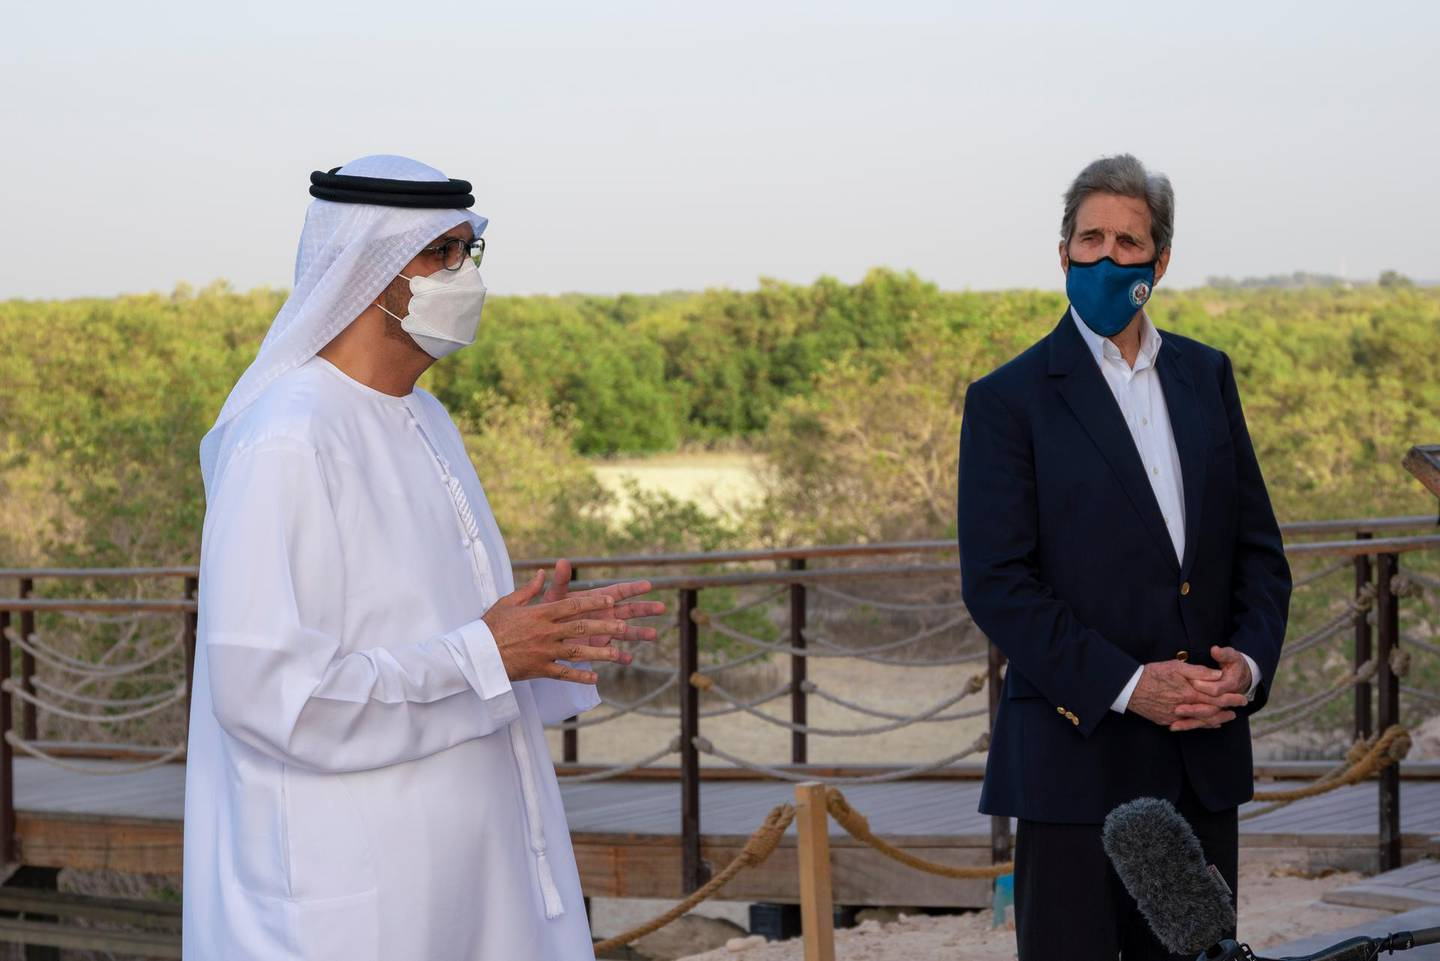 HI-RES. Us Special Presidential Envoy for Climate John Kerry  with UAE Special Envoy for Climate Change and Abu Dhabi National Oil Company CEO, Sultan Ahmed Al Jaber, during a visit to Jubail Mangrove Park, in Abu Dhabi, United Arab Emirates April 3, 2021. Office of the UAE Special Envoy for Climate Change